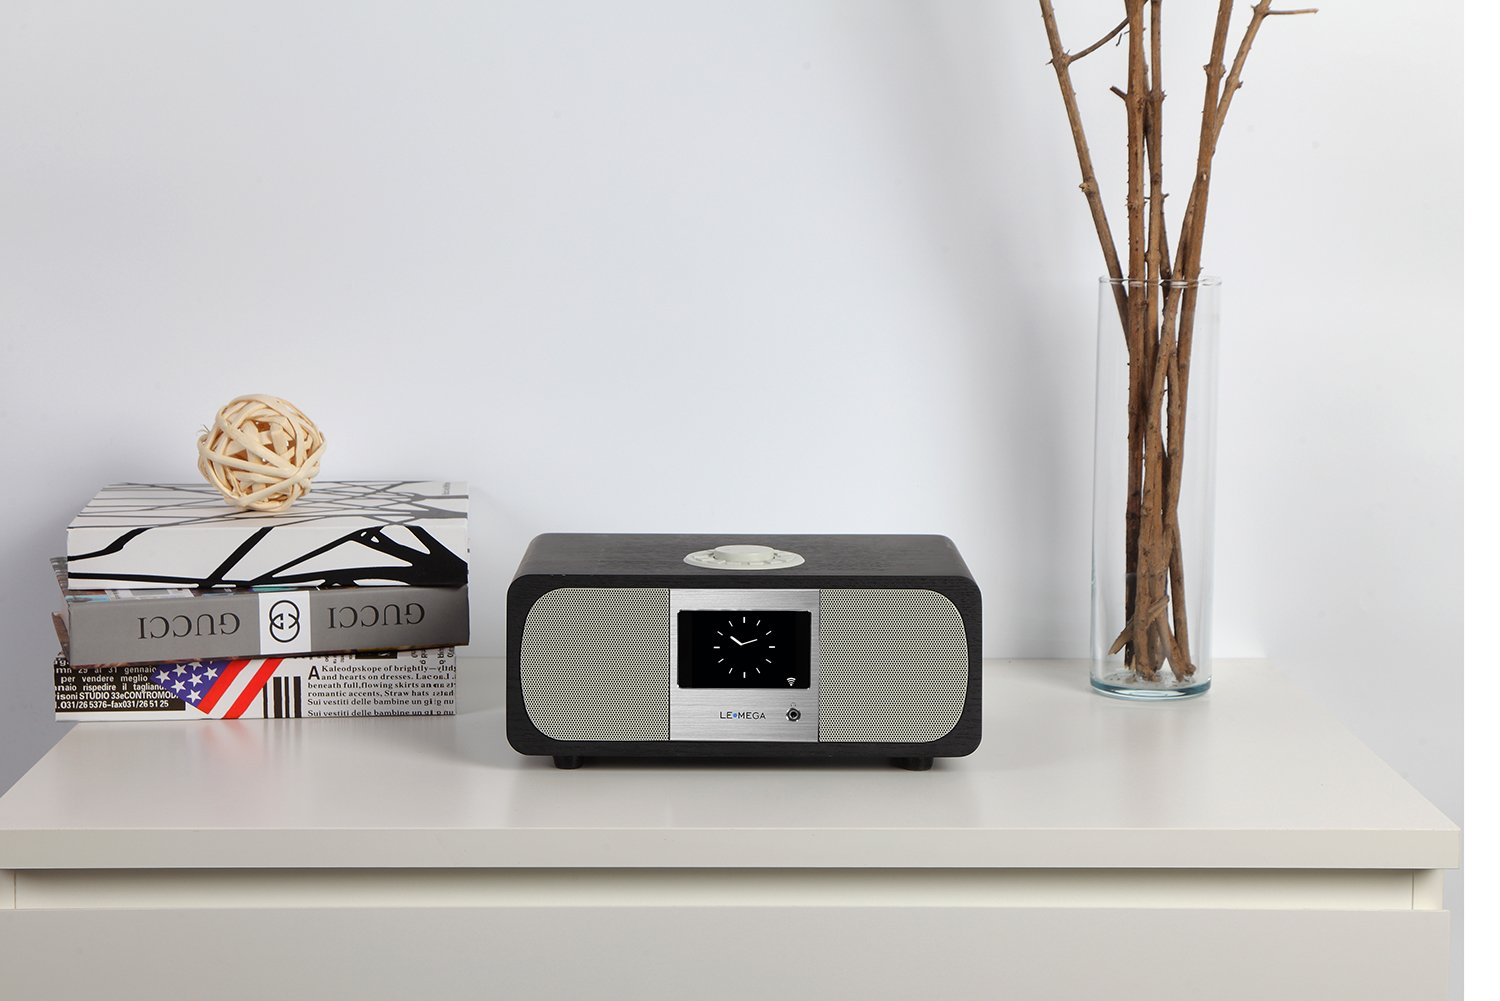 Lemega M3+ Internet Radio & Wireless Smart Speaker (HI-FI 2.1 Stereo) with FM, Bluetooth Music Streaming, Spotify Connect, Remote & App Control, Dual Alarm, Colour Display (Black Oak) by LEMEGA (Image #6)